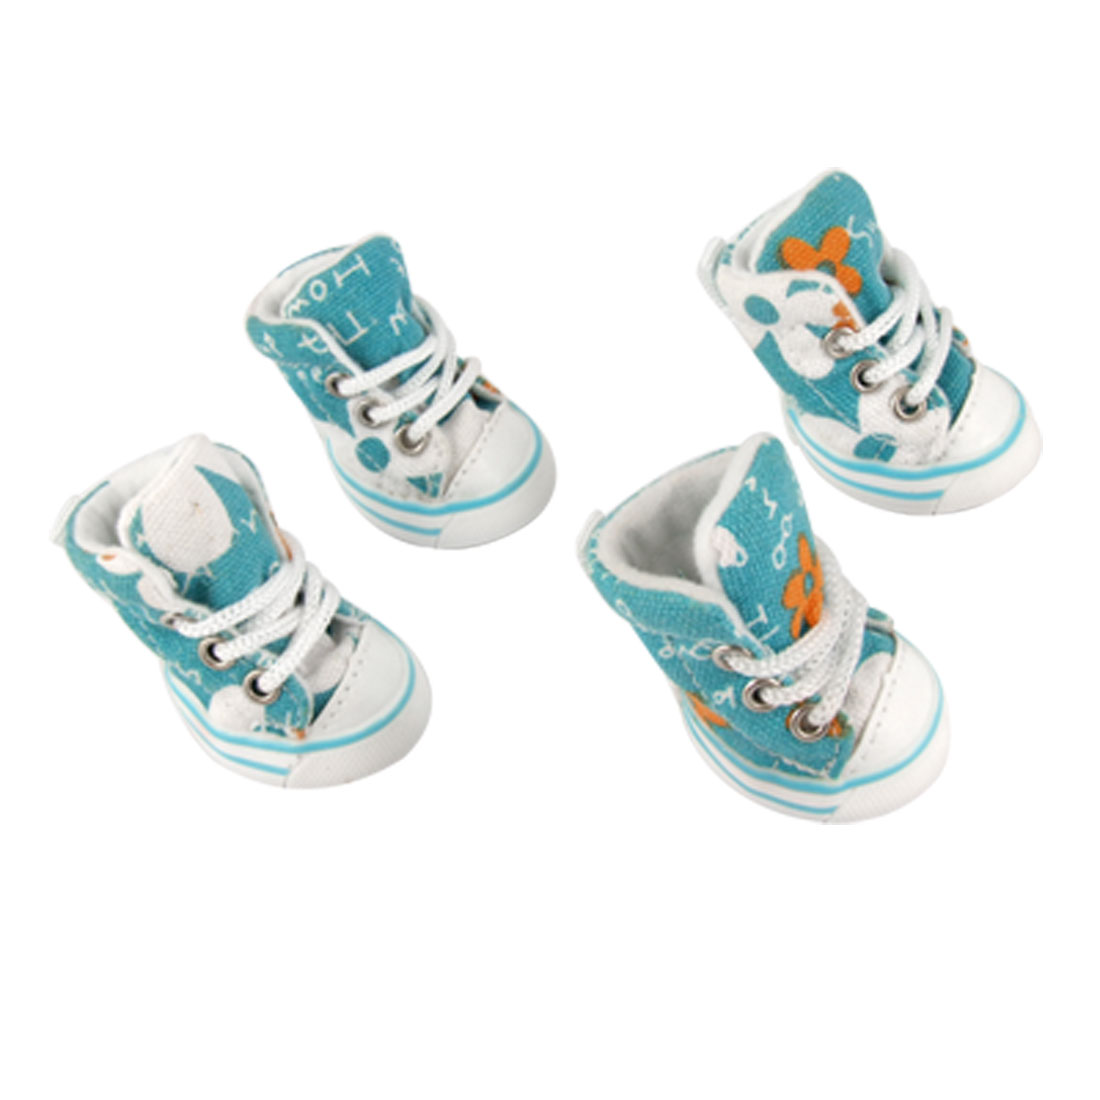 Puppy Anti-slip Rubber Sole Cyan Canvas Sneakers Size 1